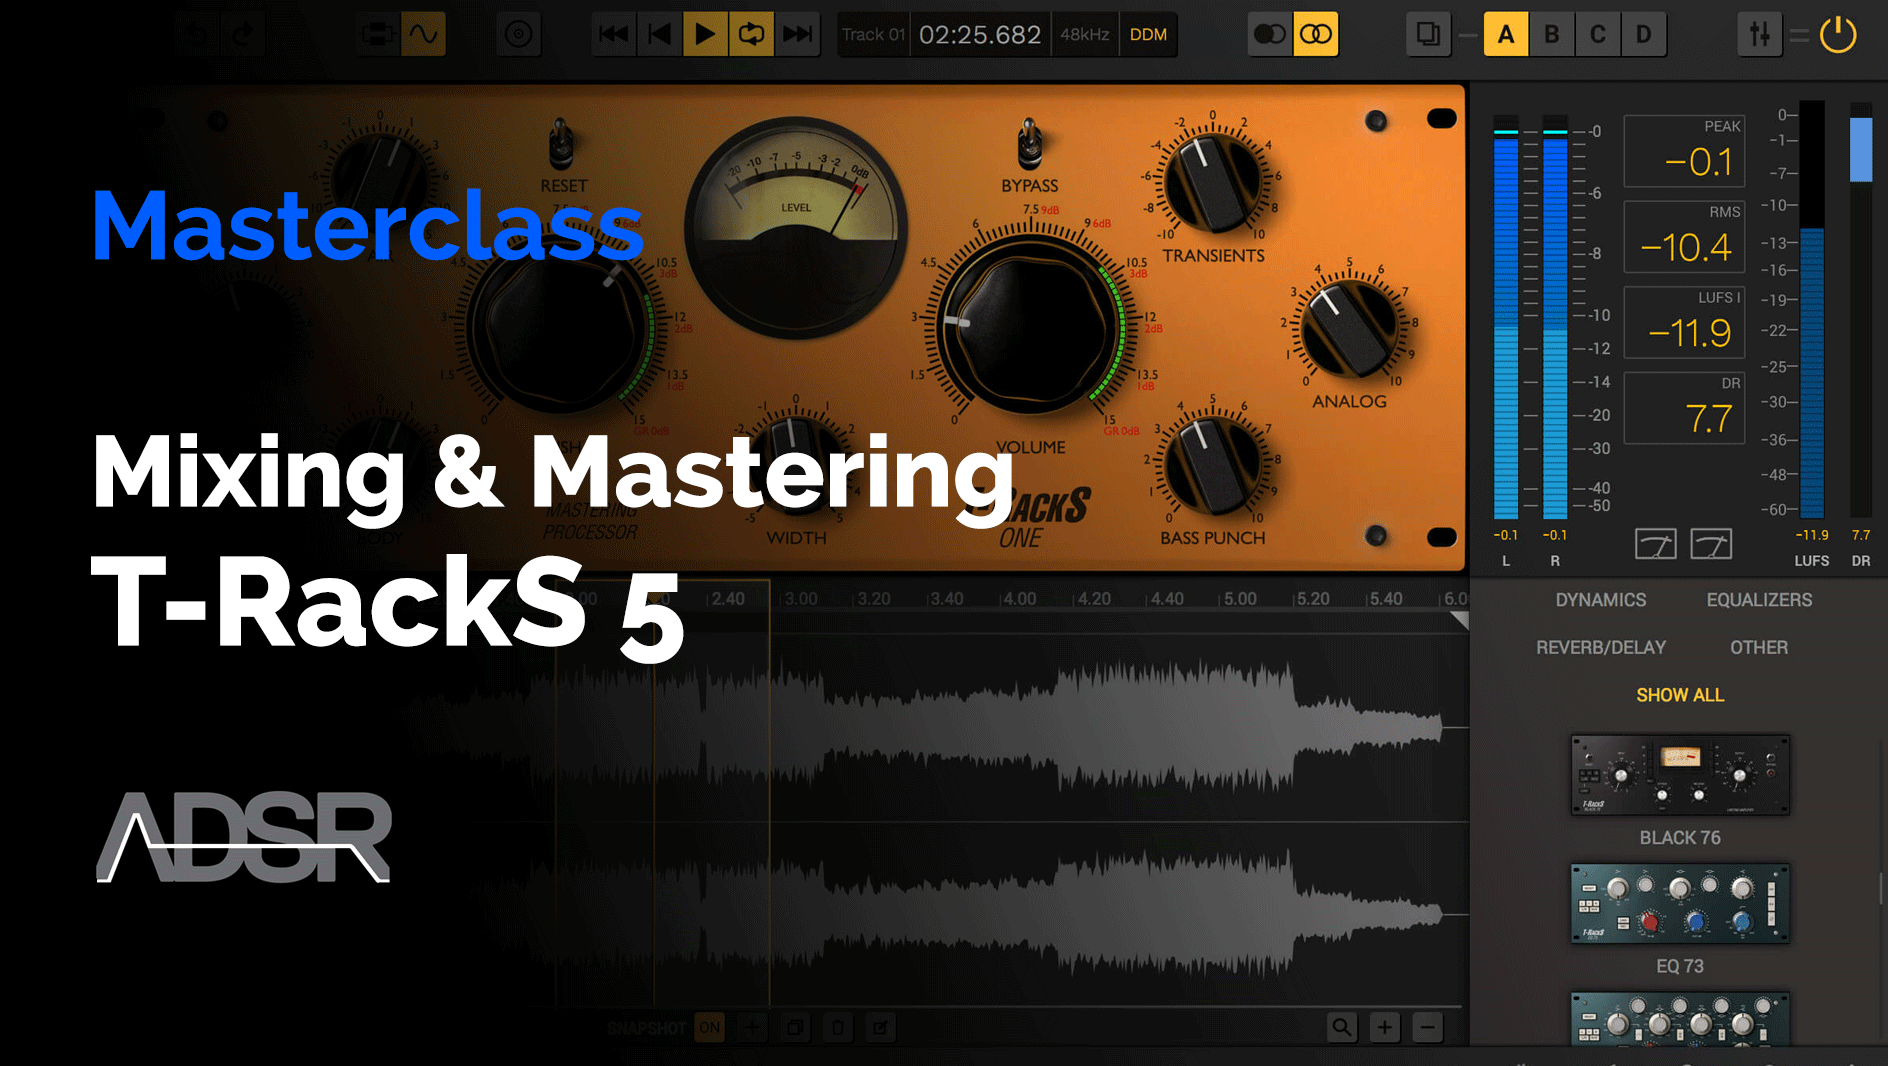 Mastering and Mixing with T-RackS 5